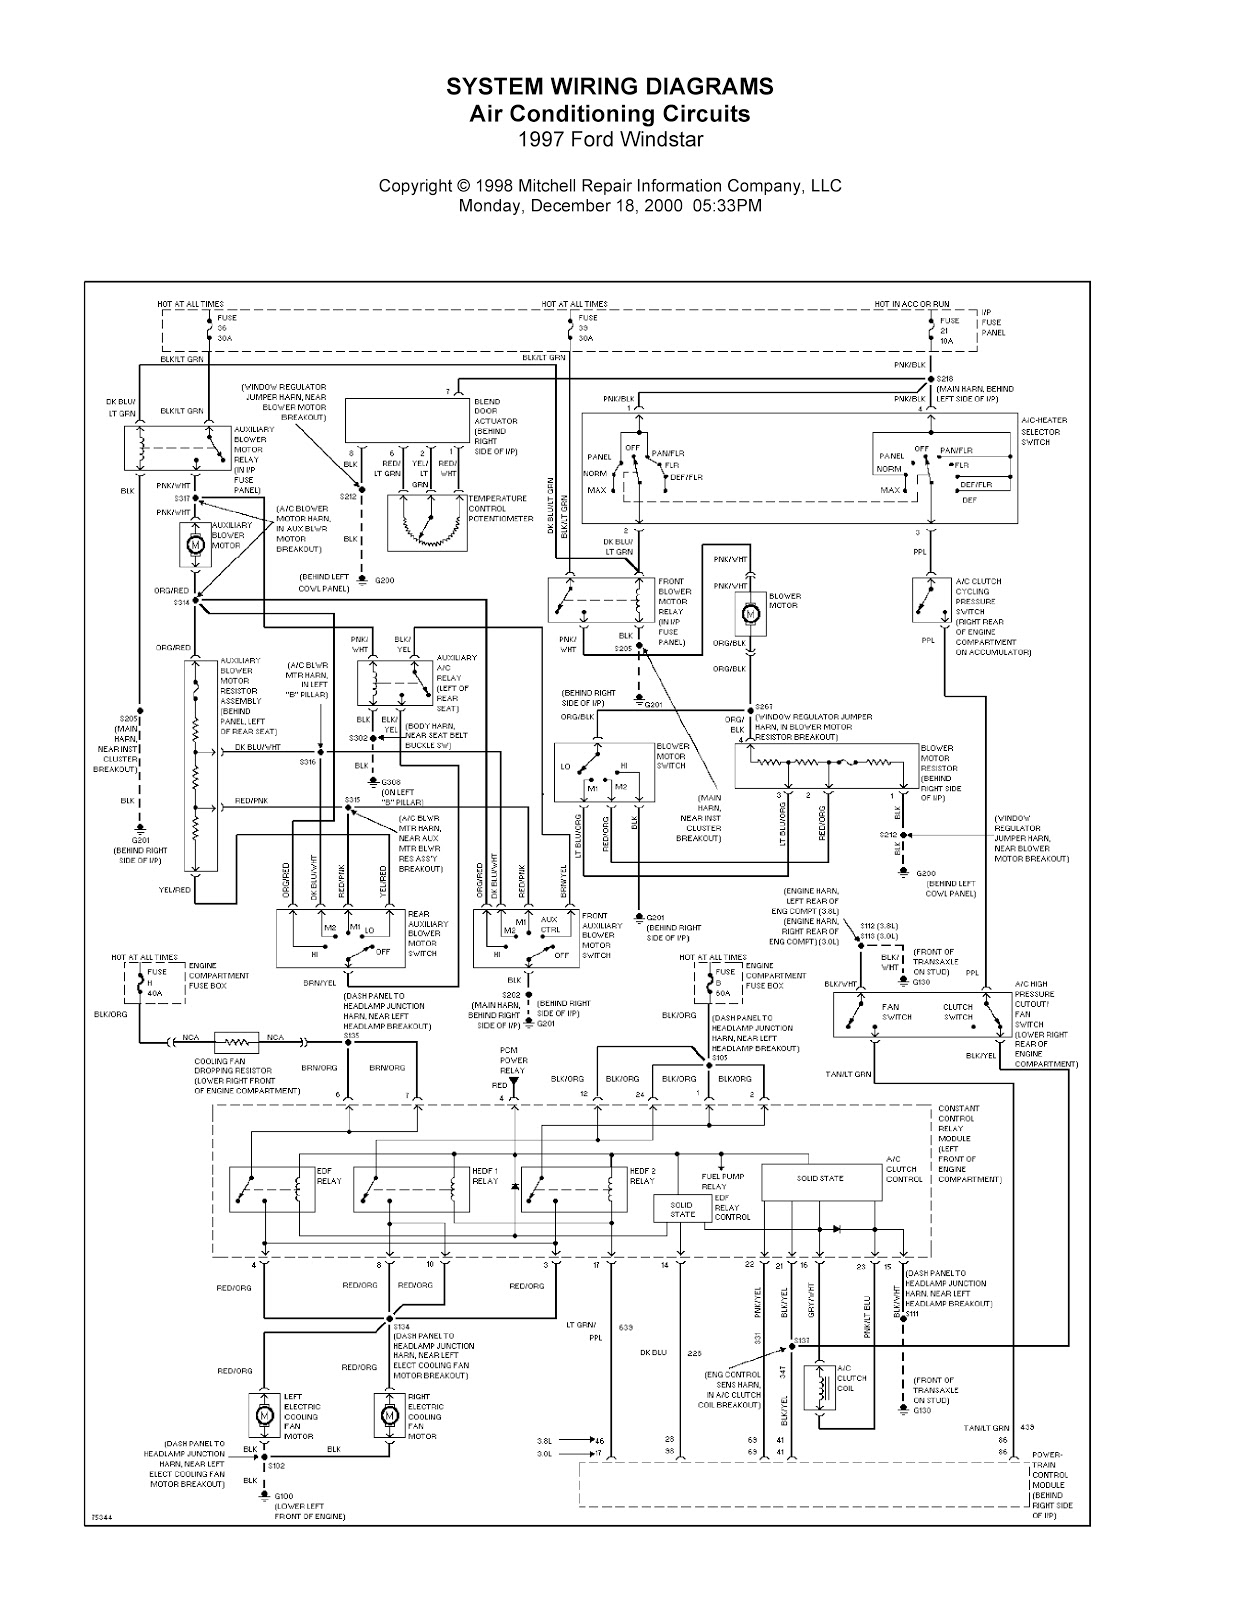 0001 1997 ford windstar complete system wiring diagrams wiring 2000 windstar fuse box diagram at virtualis.co